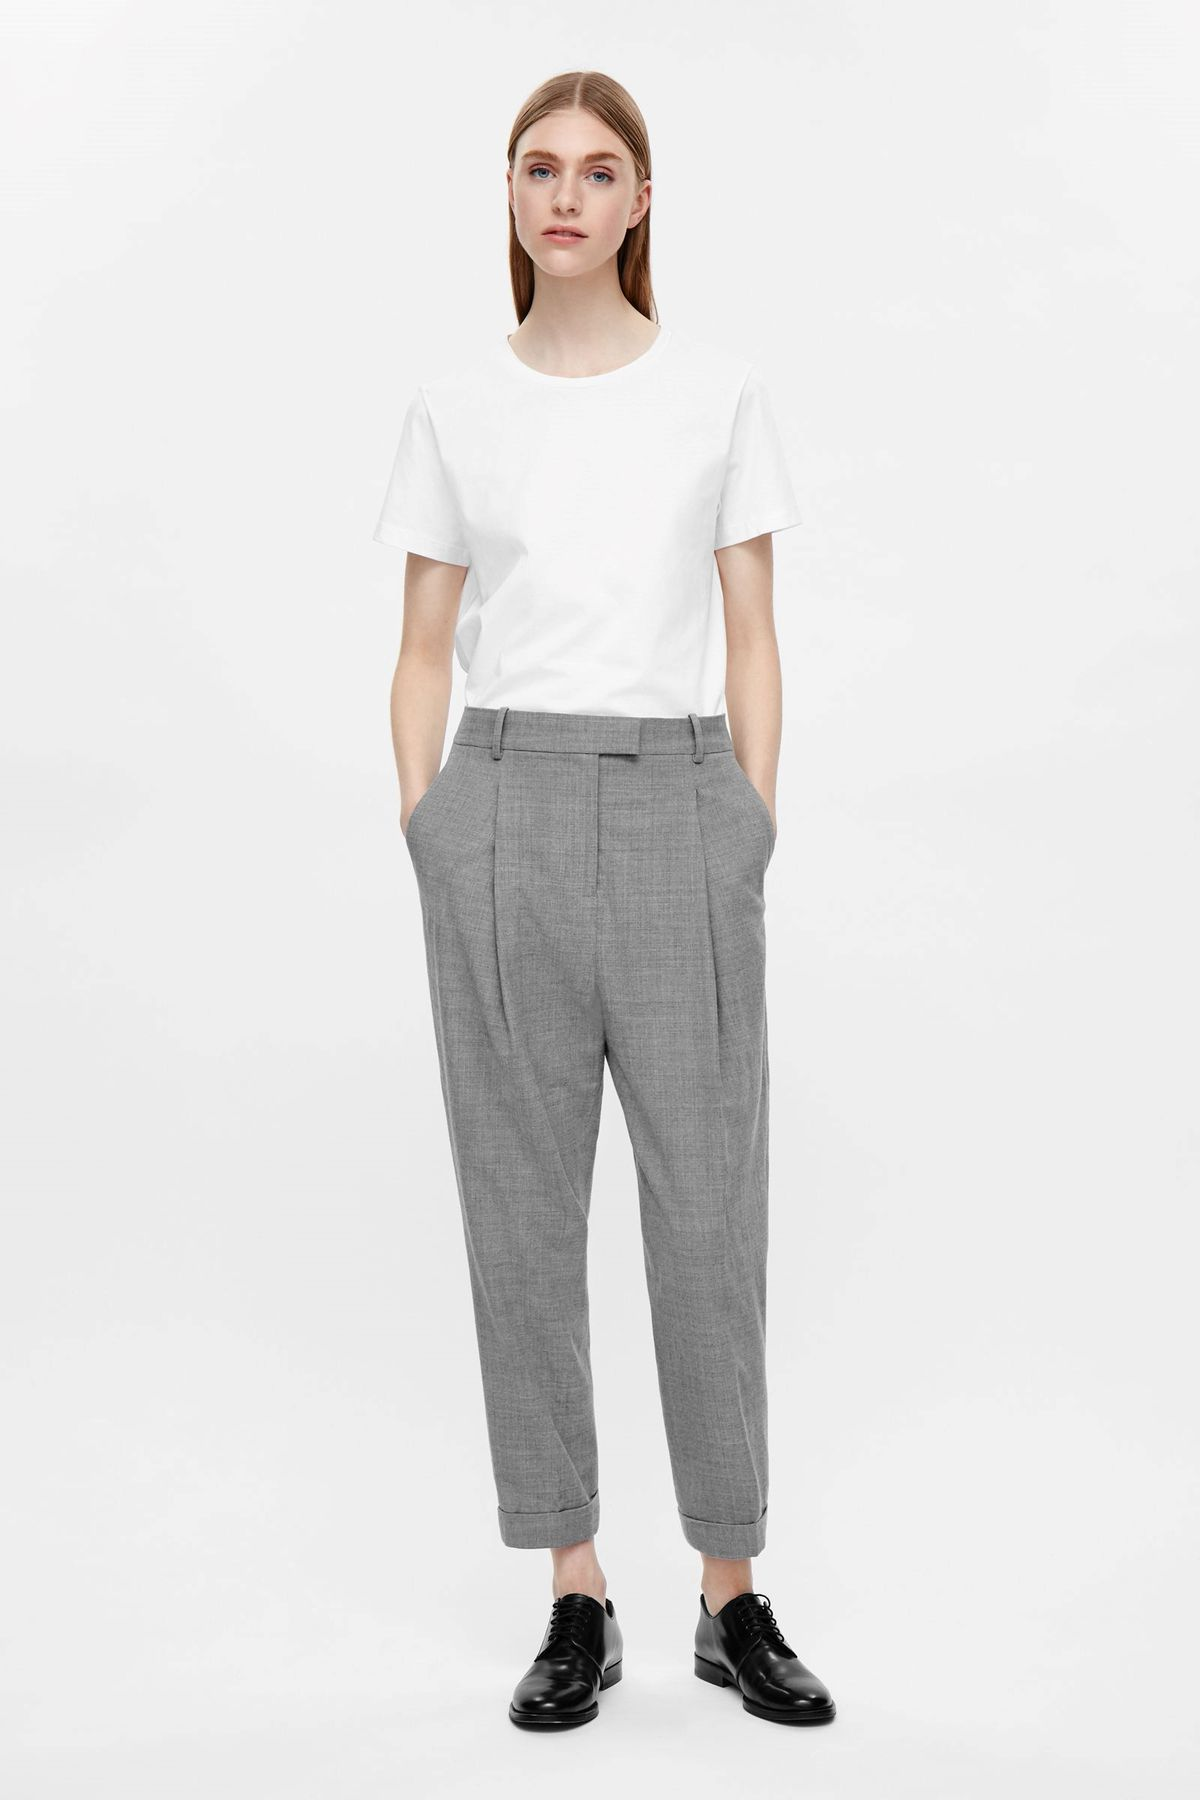 231a1720b72be Woman in white t-shirt, gray tapered trousers and black oxfords.